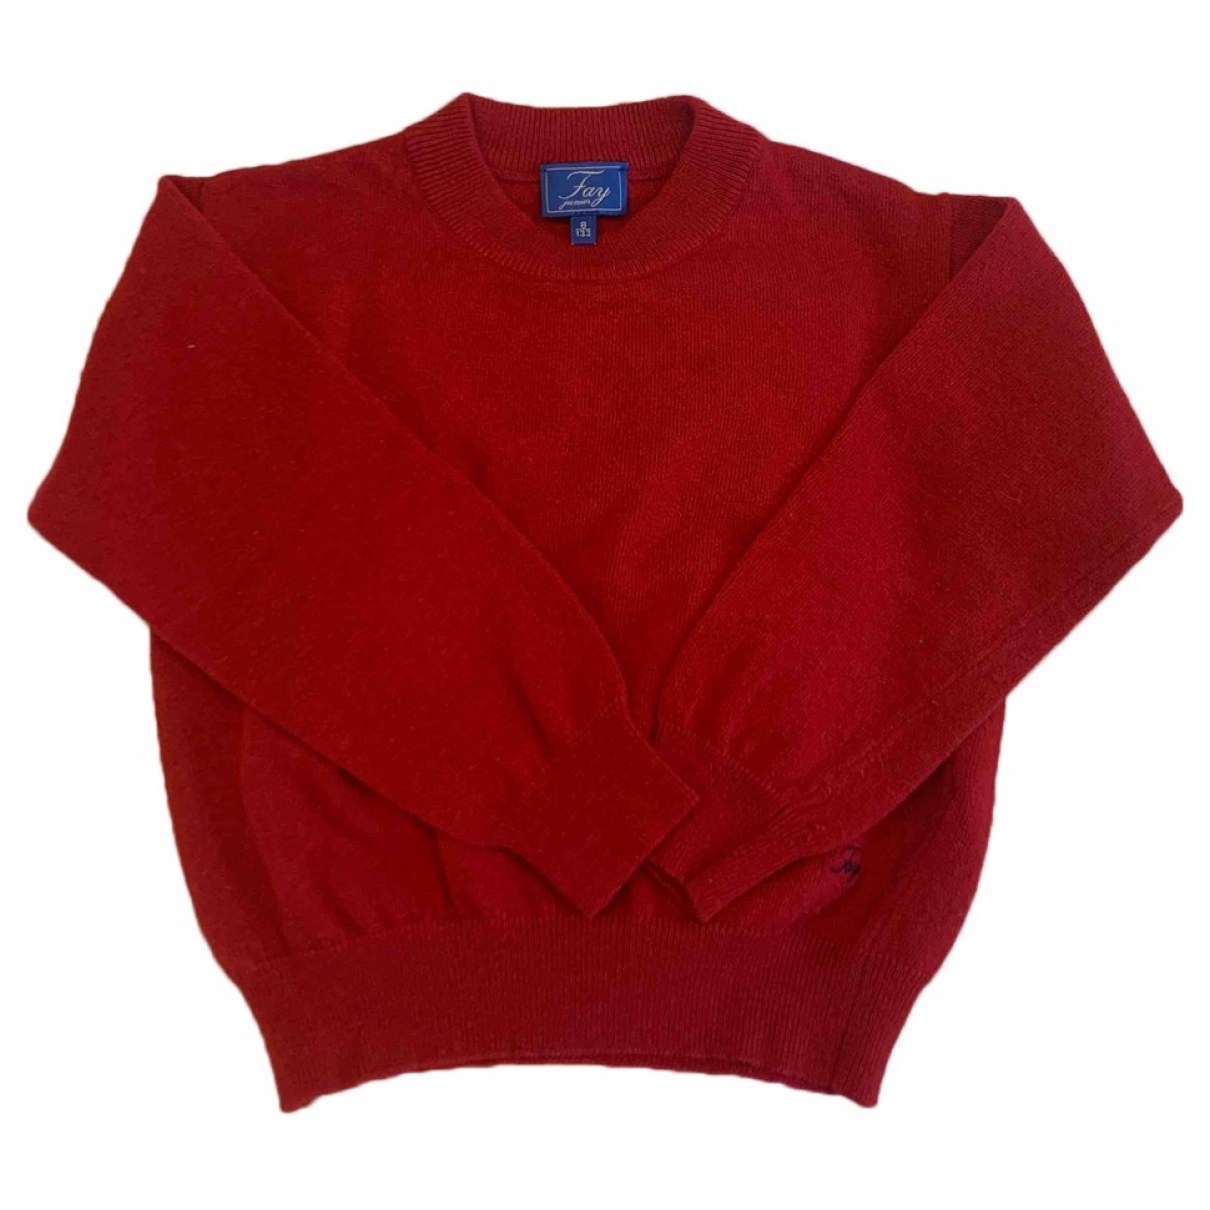 Fay \N Pullover, StrickJacke in  Rot Wolle